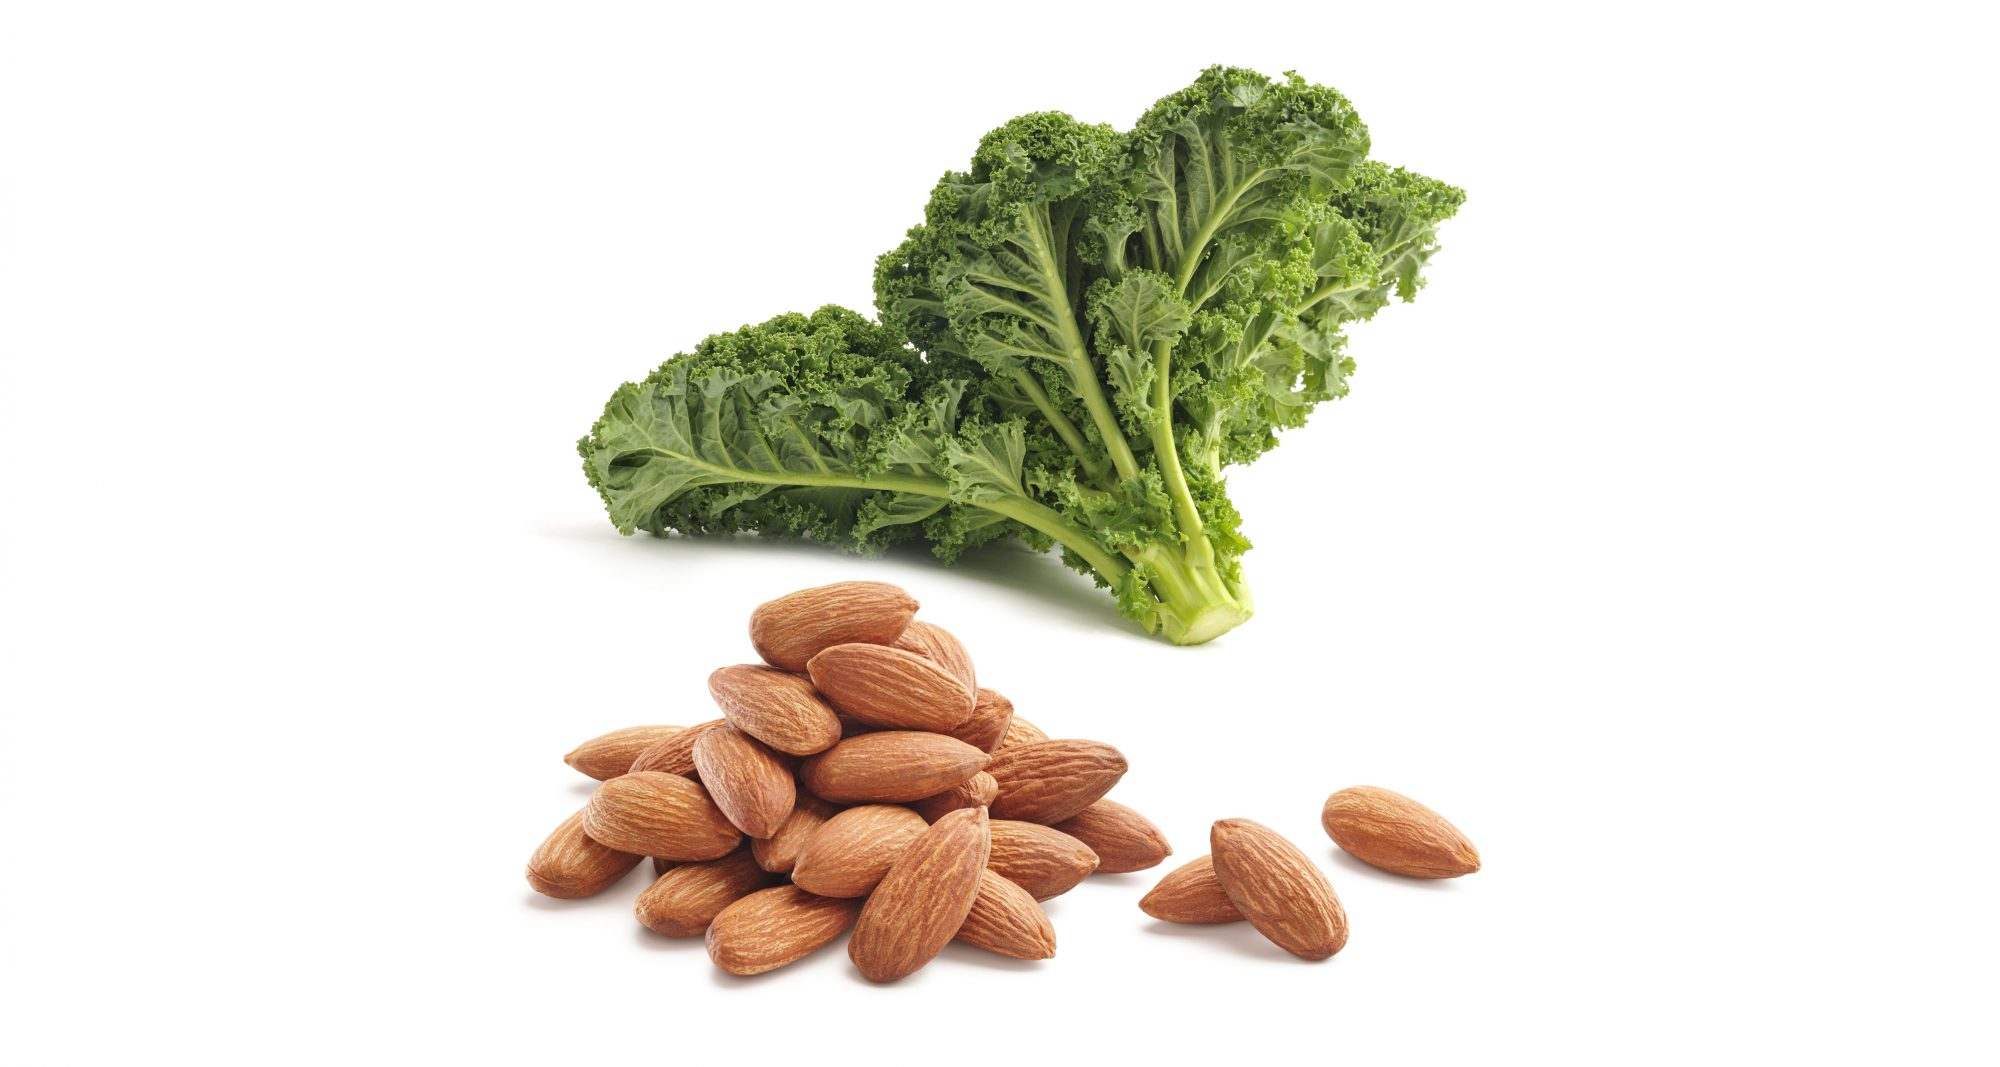 Kale + almonds